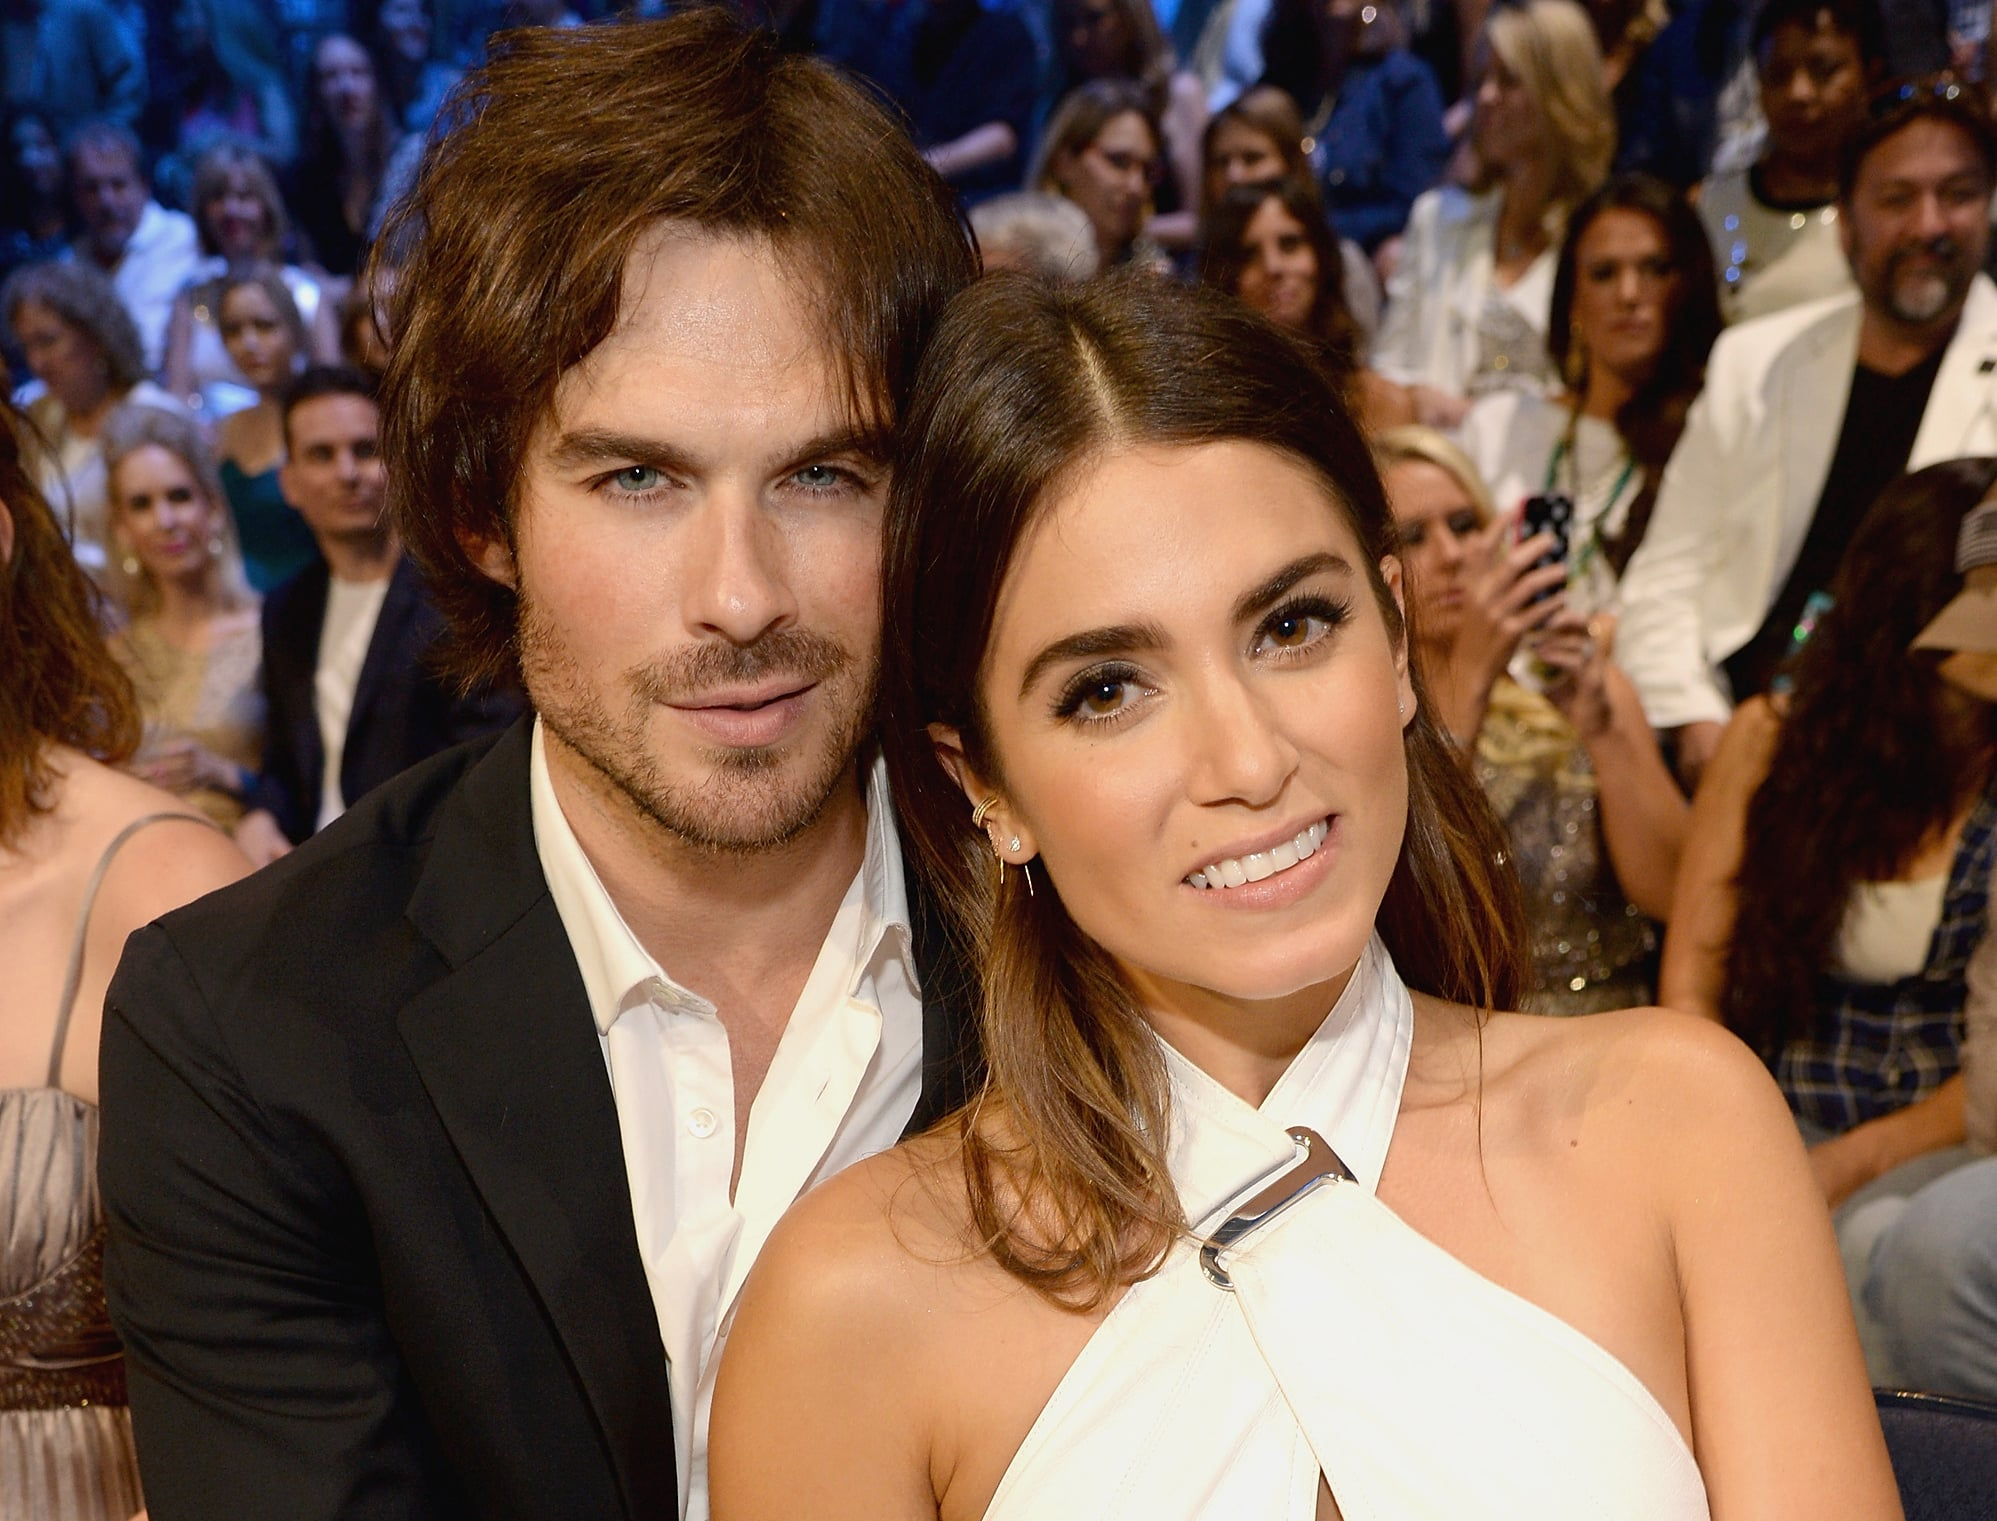 che è Nikki Reed dating 2013